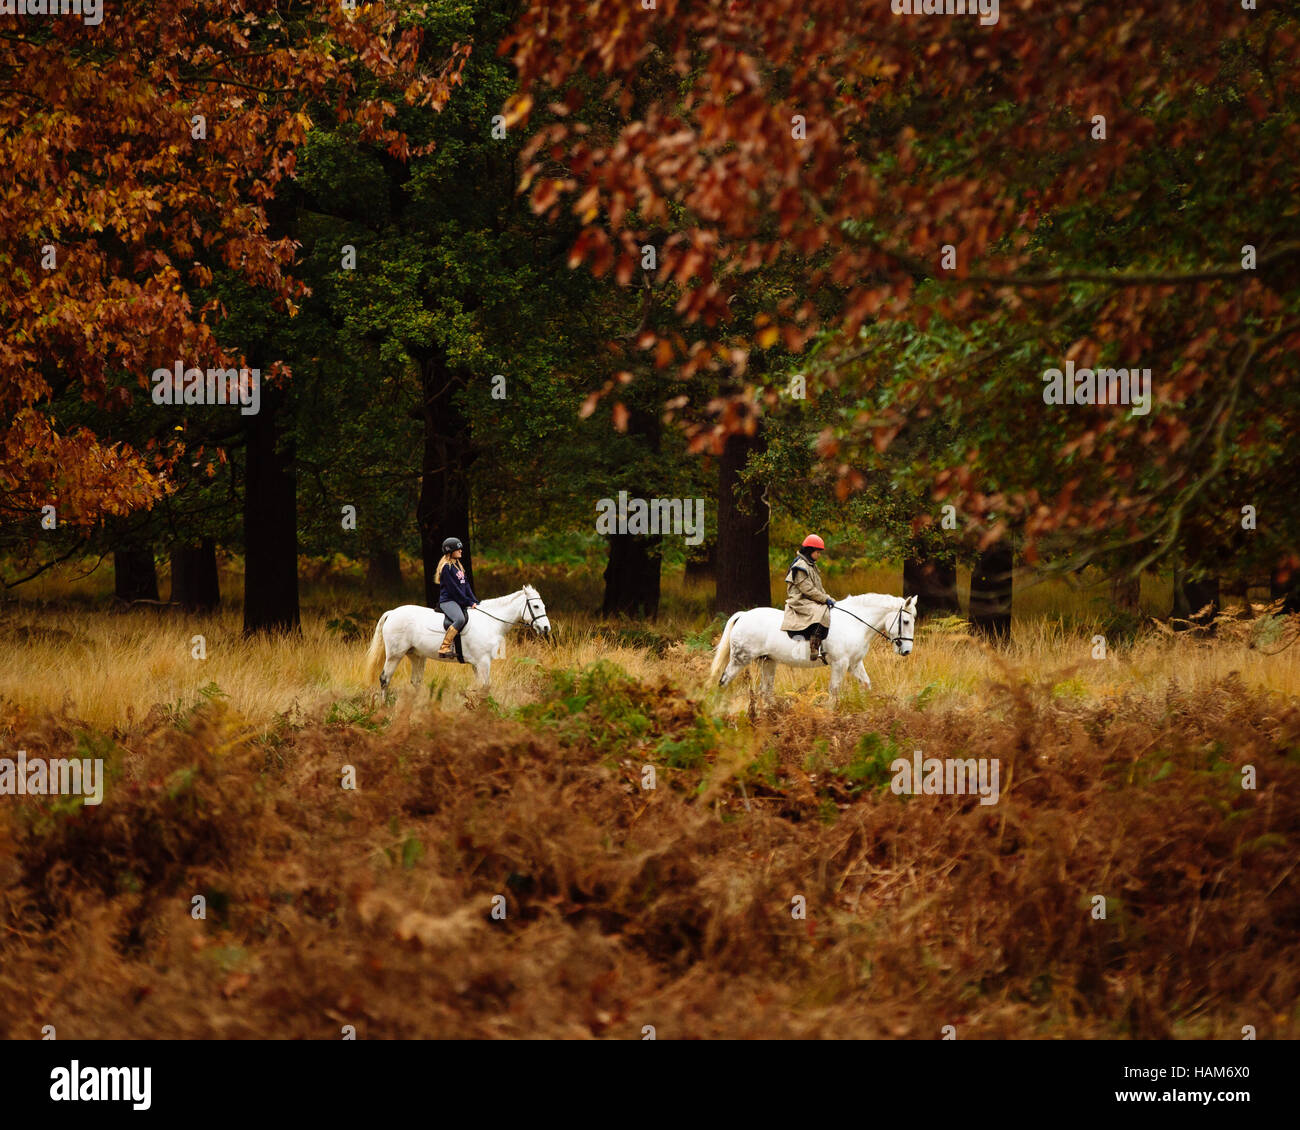 Two horse riders canter through Richmond Park in the autumn - Stock Image